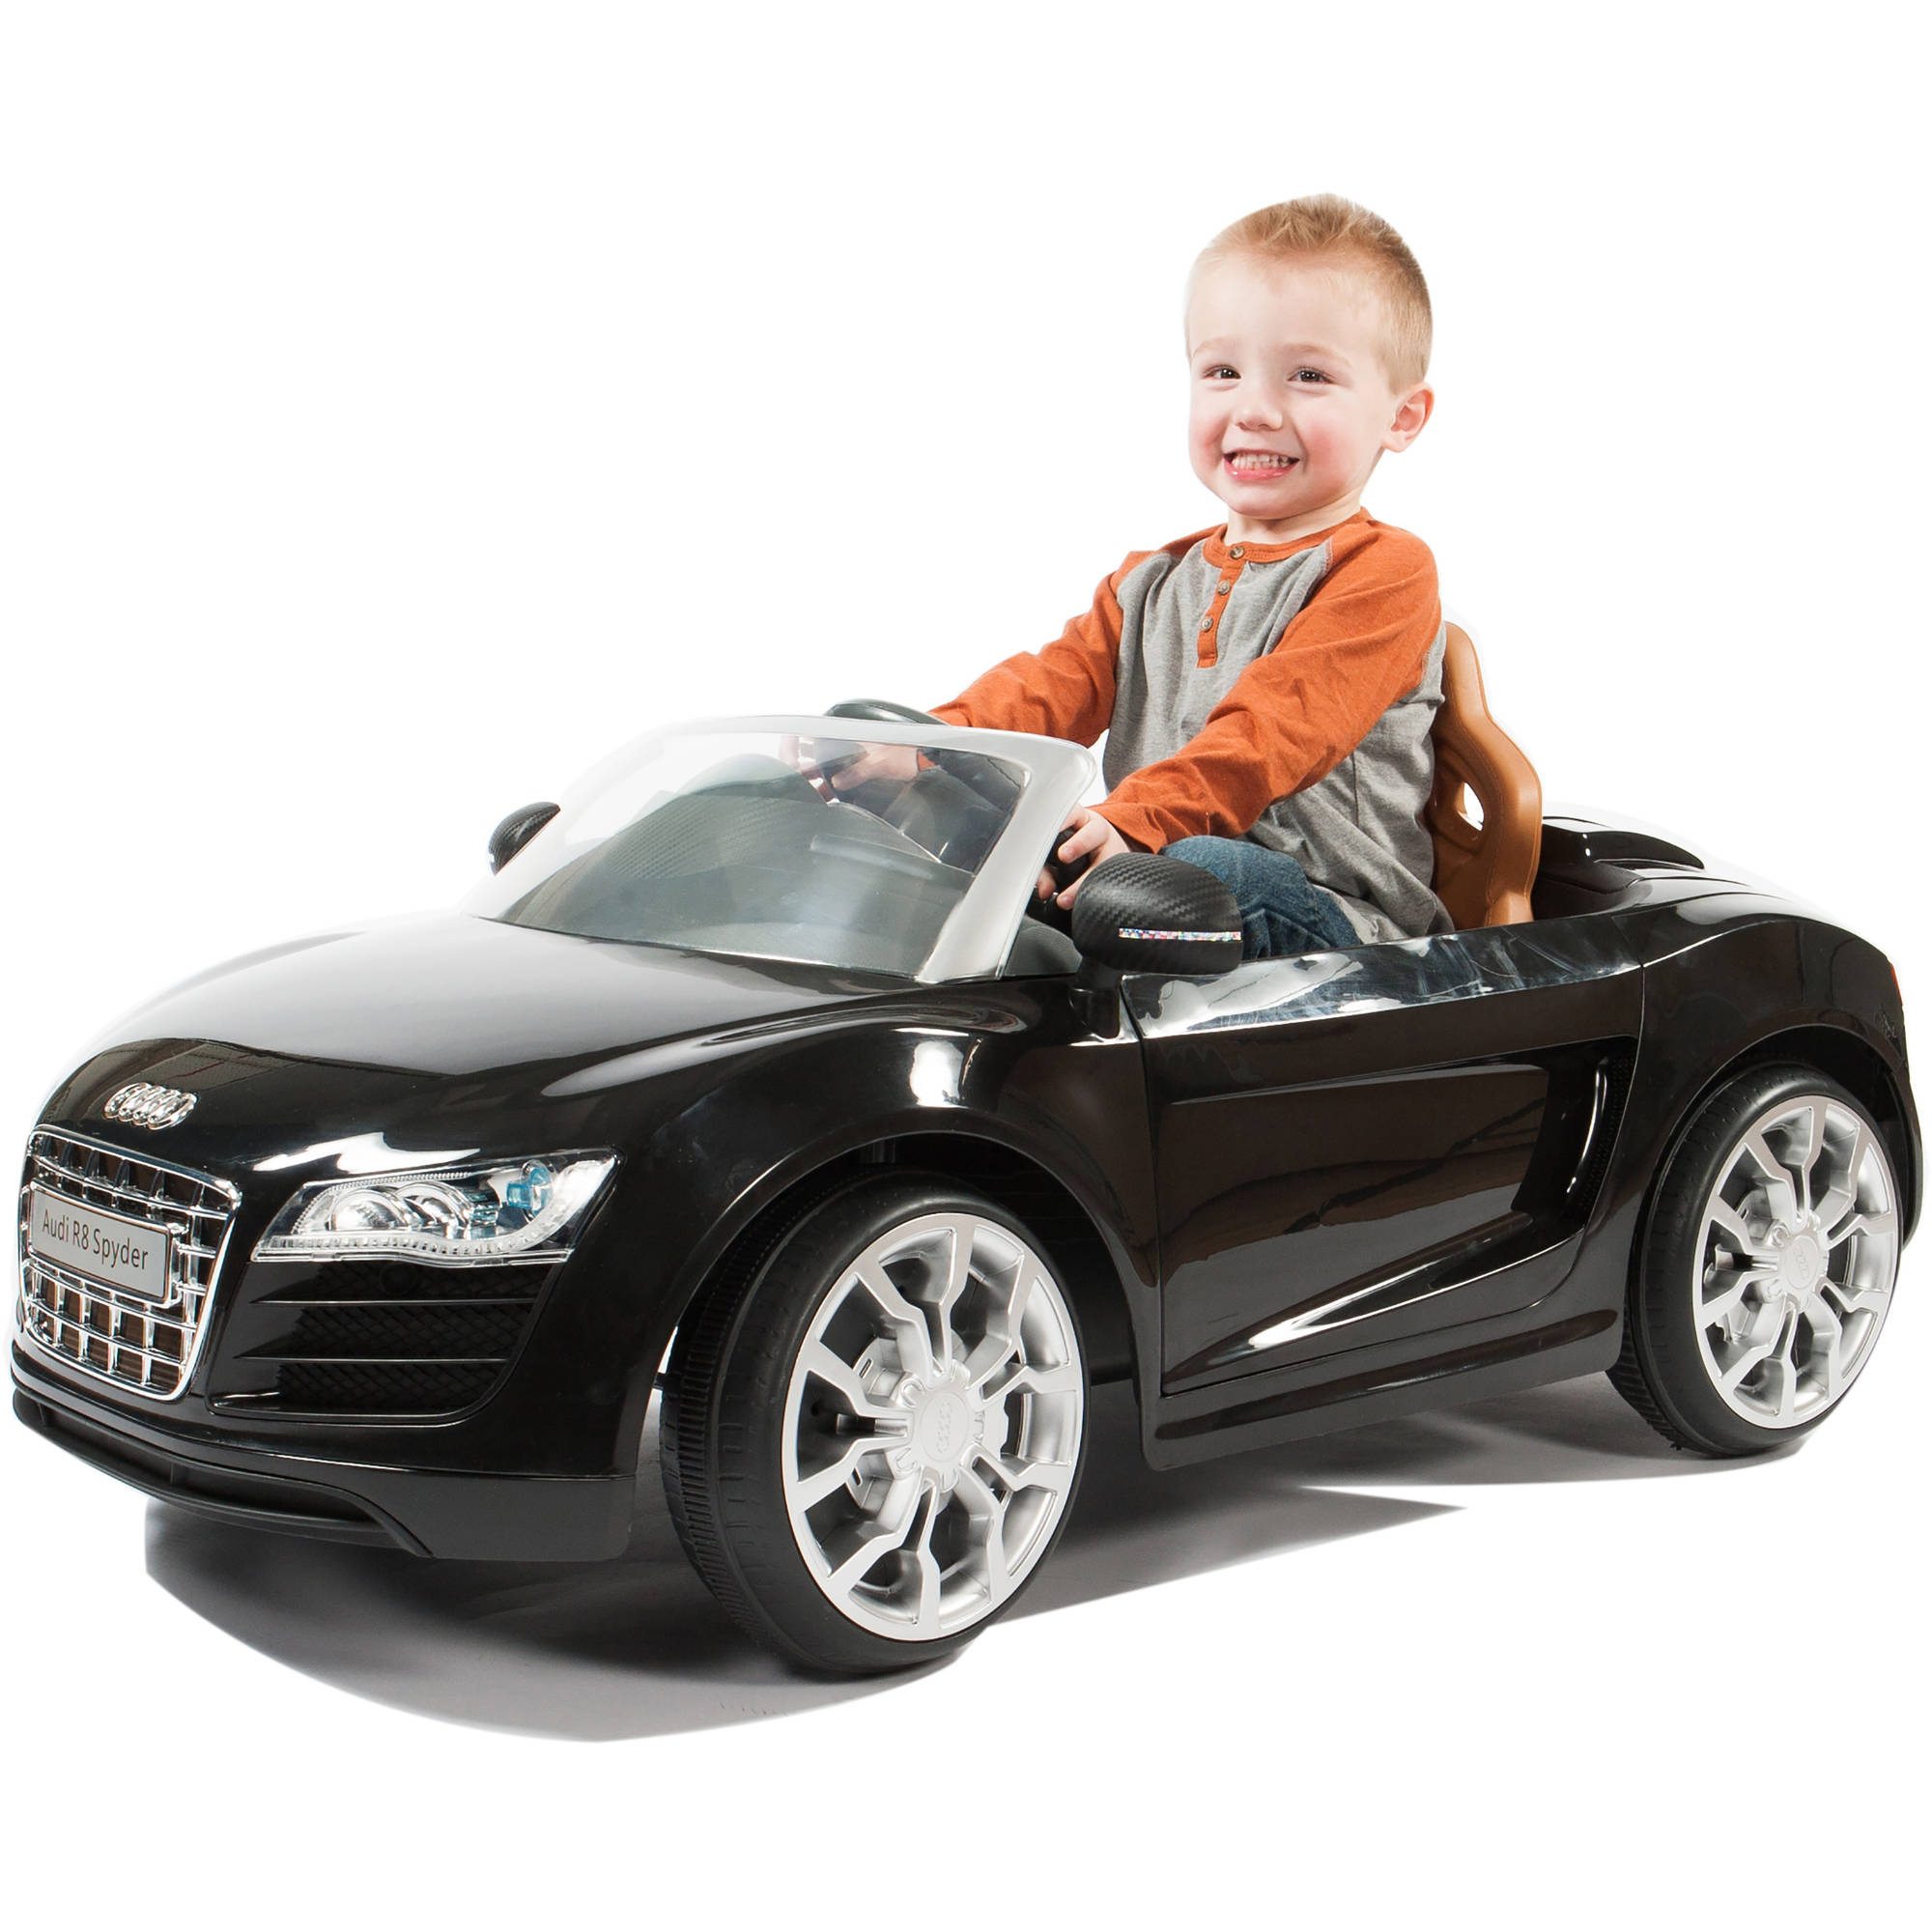 Rollplay Audi R8 Spyder 6 Volt Battery Ride On Vehicle   Walmart.com